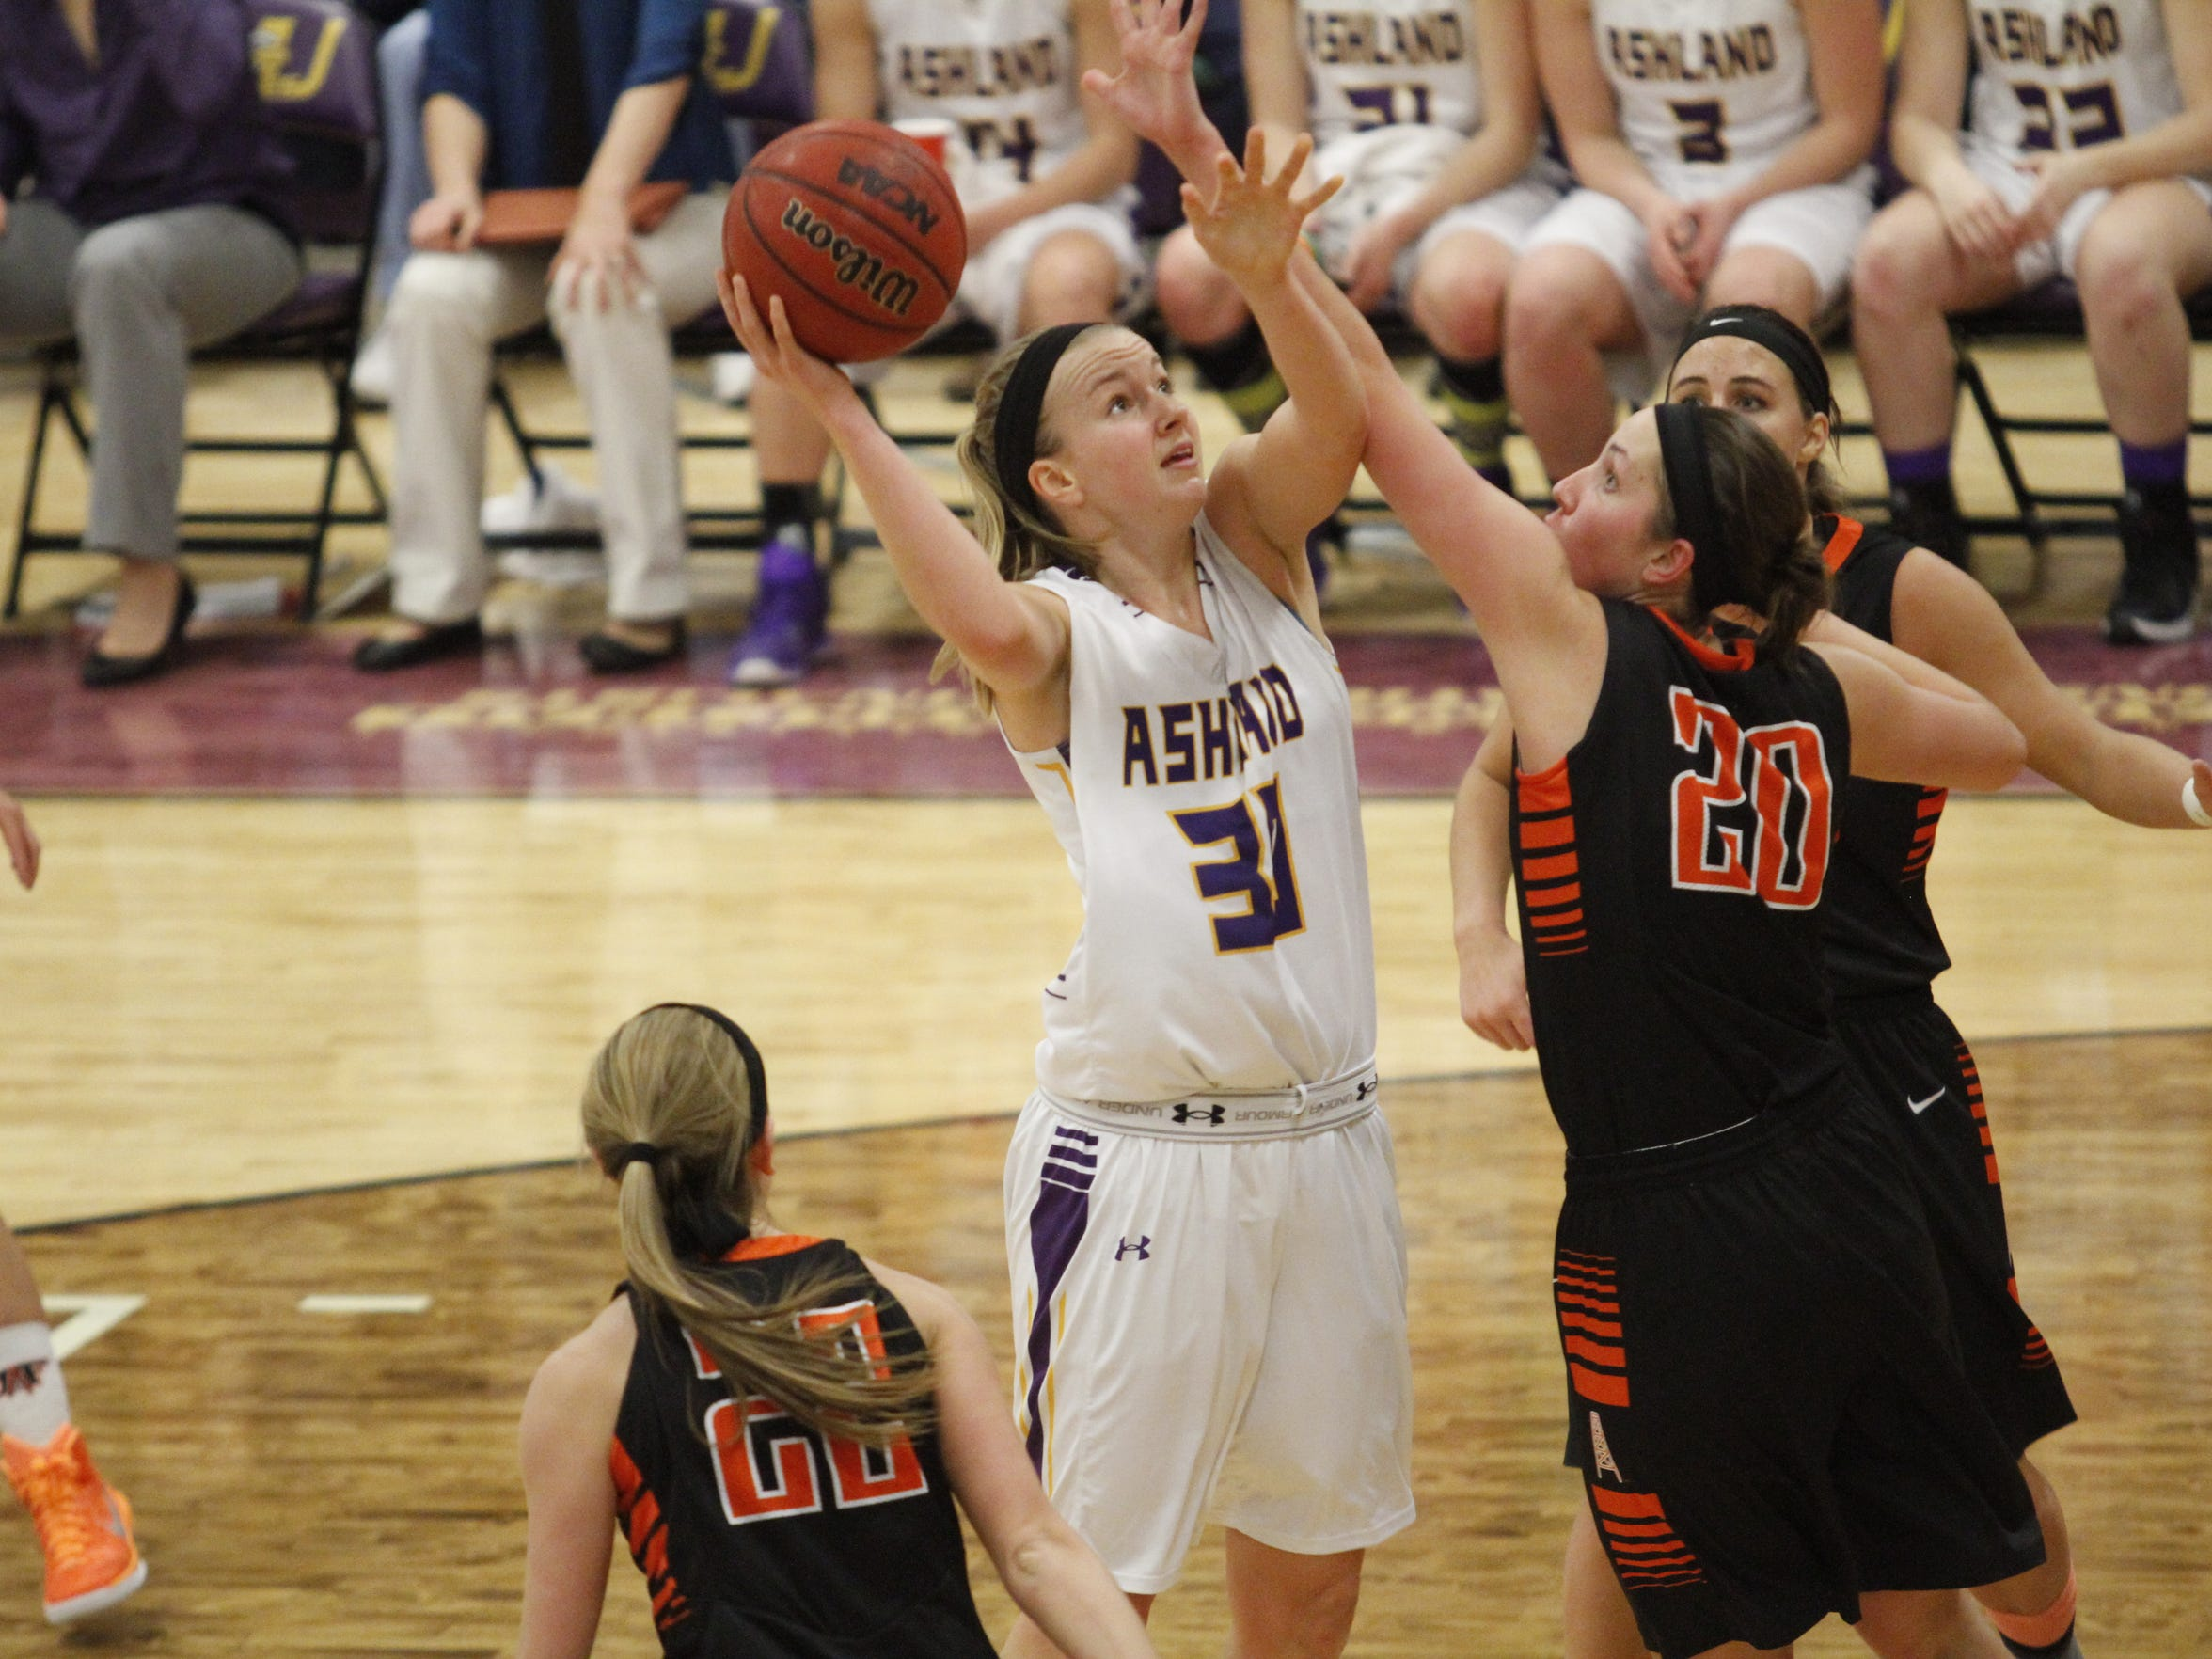 Andi Daugherty attempts a shot against the University of Findlay during a college women's basketball game on Thursday, Jan. 22, 2015